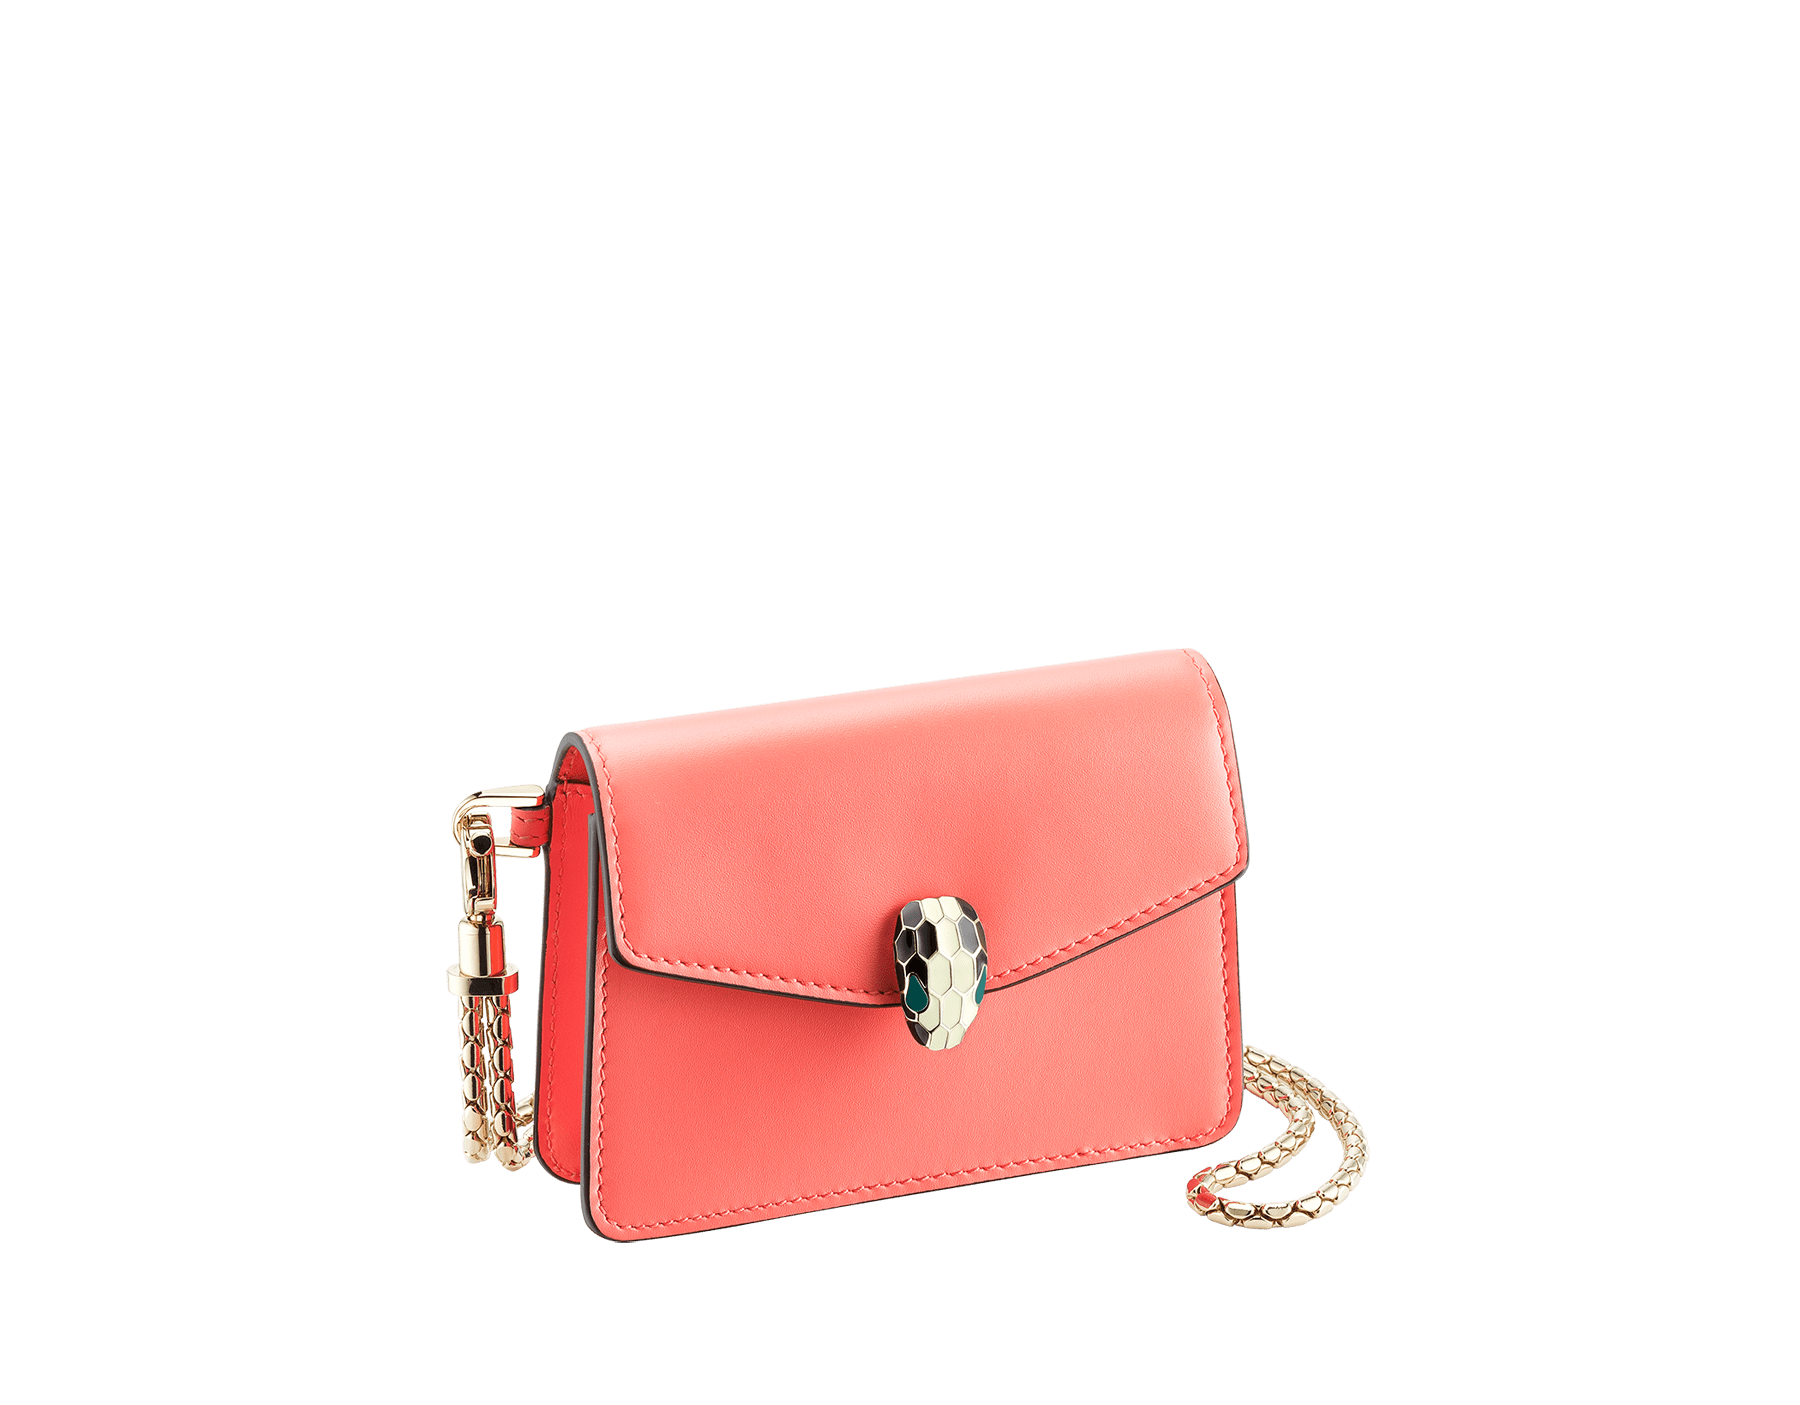 Serpenti Forever neck credit card holder in silky coral calf leather. Iconic snakehead closure in black and white enamel, with green enamel eyes. 289100 image 1